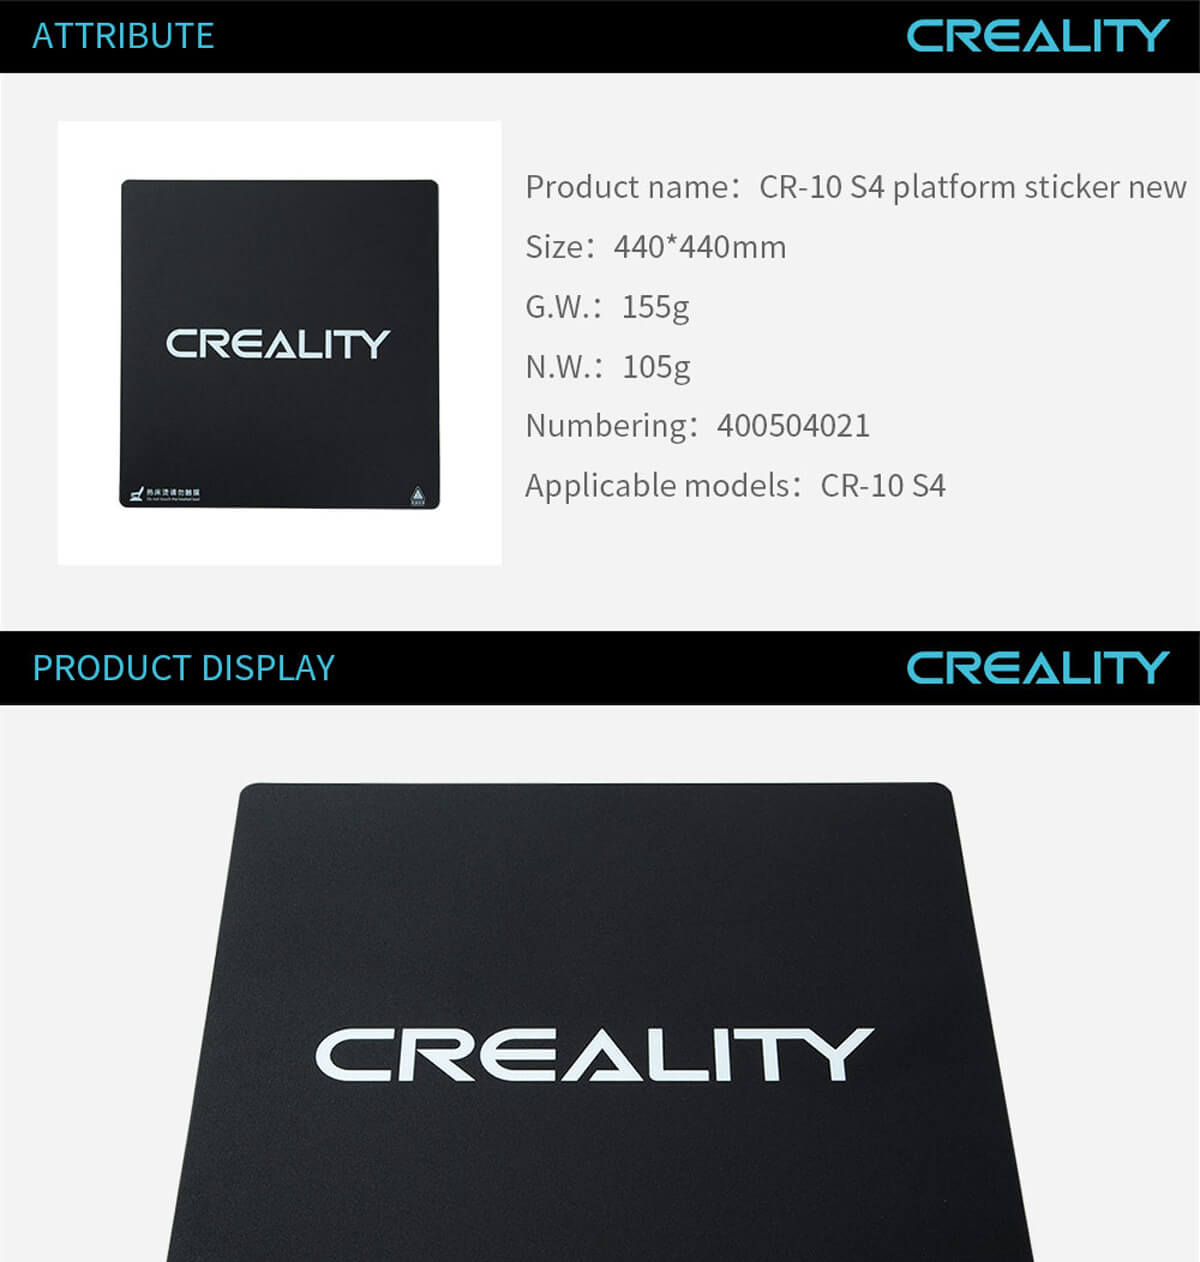 creality-3d-printer-cr-10-s4-platform-sticker-new-11